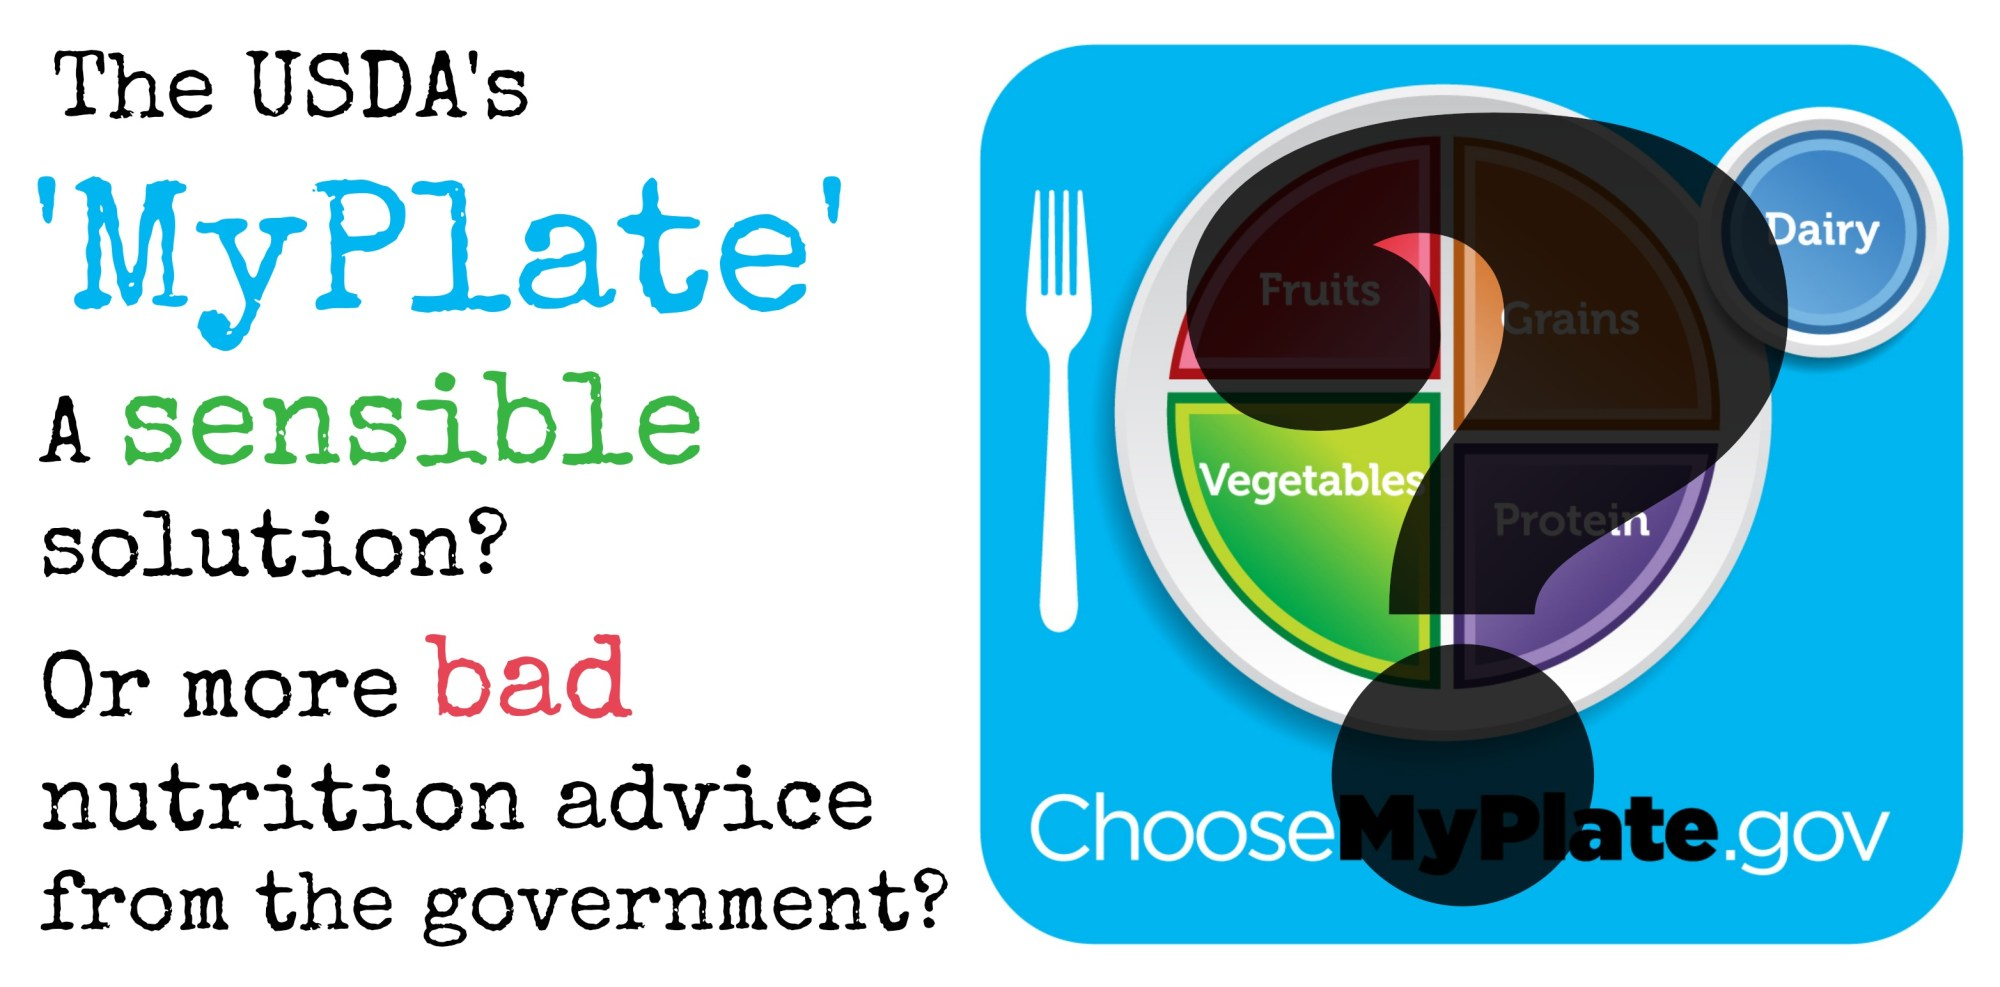 hight resolution of is myplate more of the same bad nutrition advice from the government or